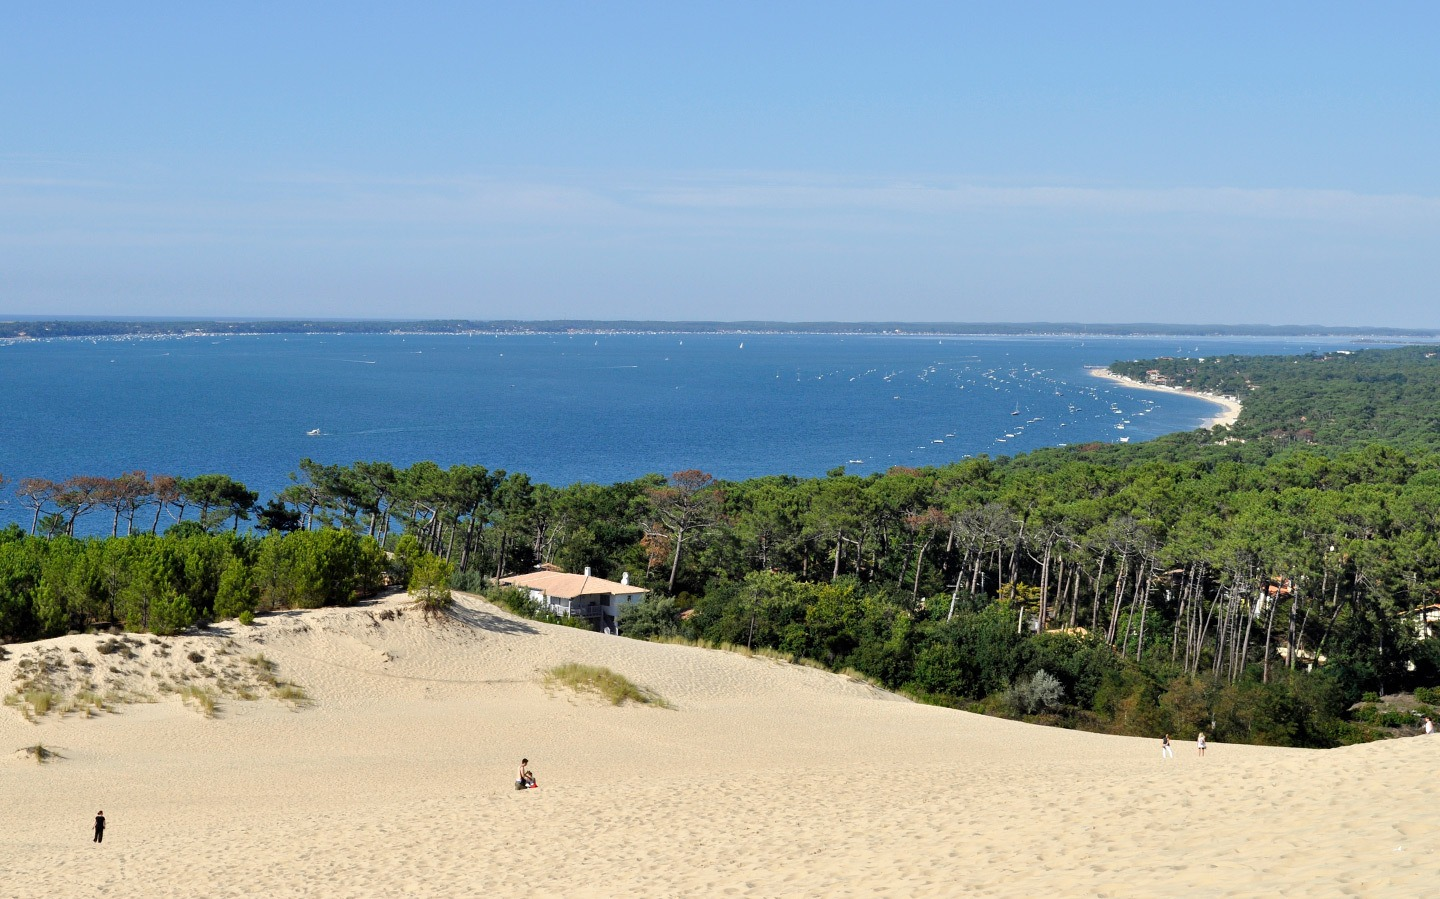 The Dune du Pyla in southwest France